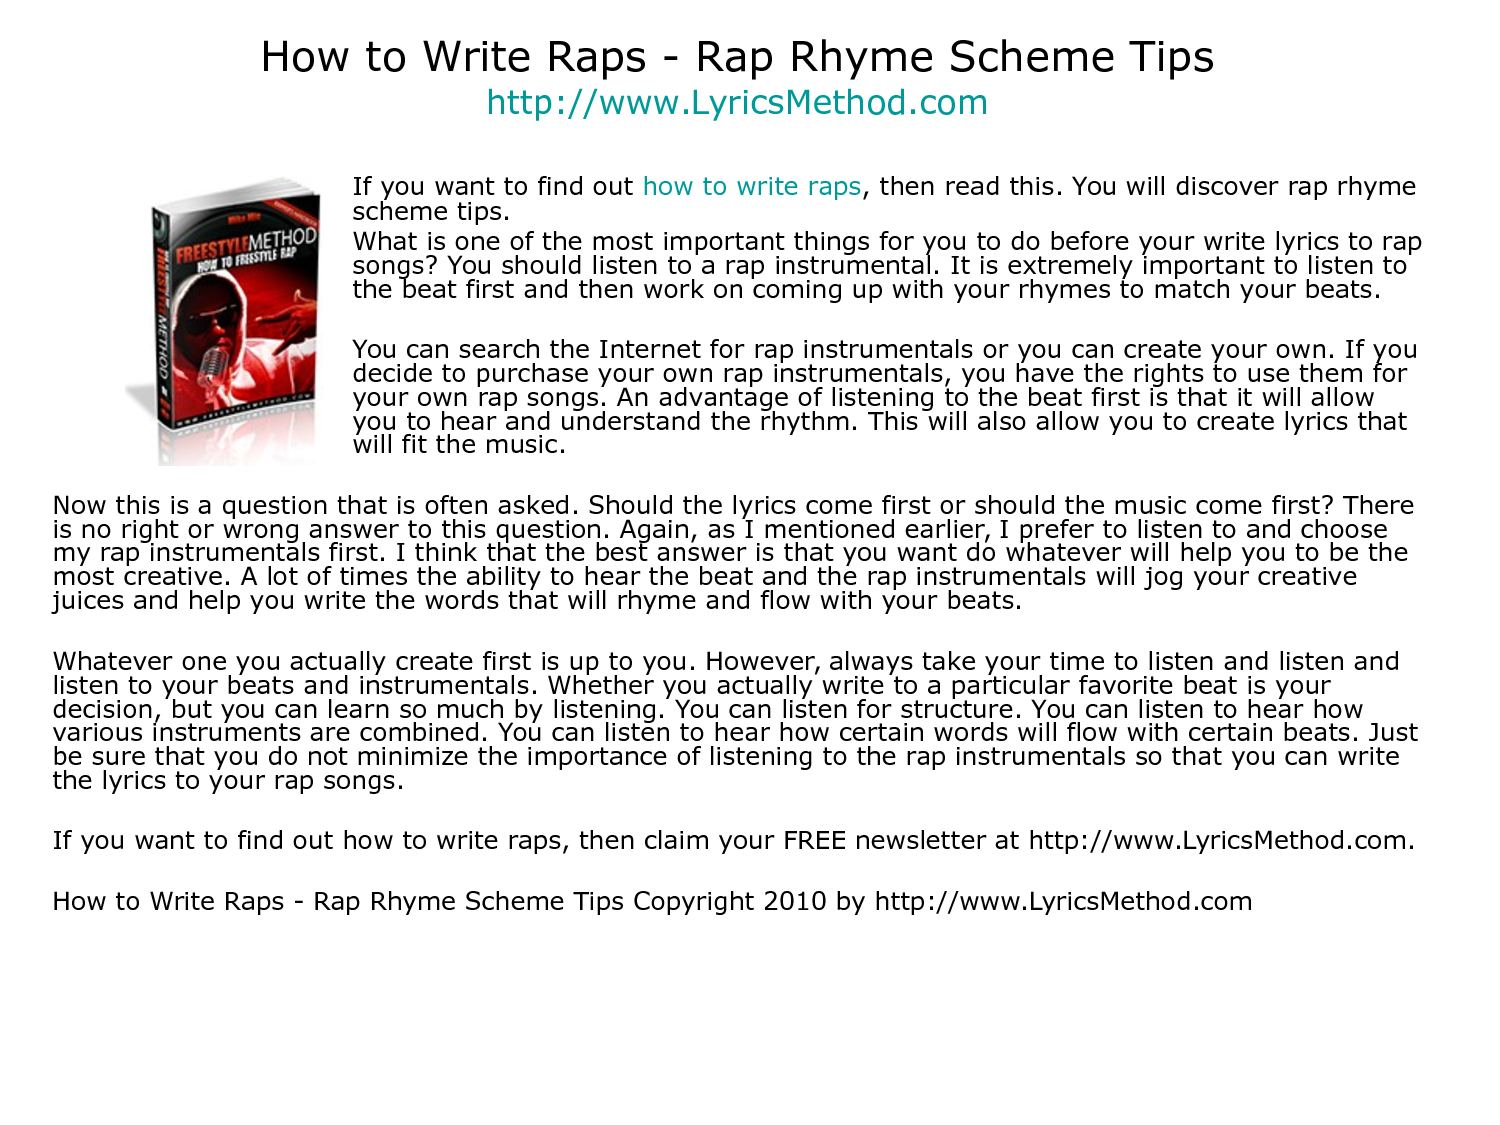 How to Write Rap Rhymes forecasting